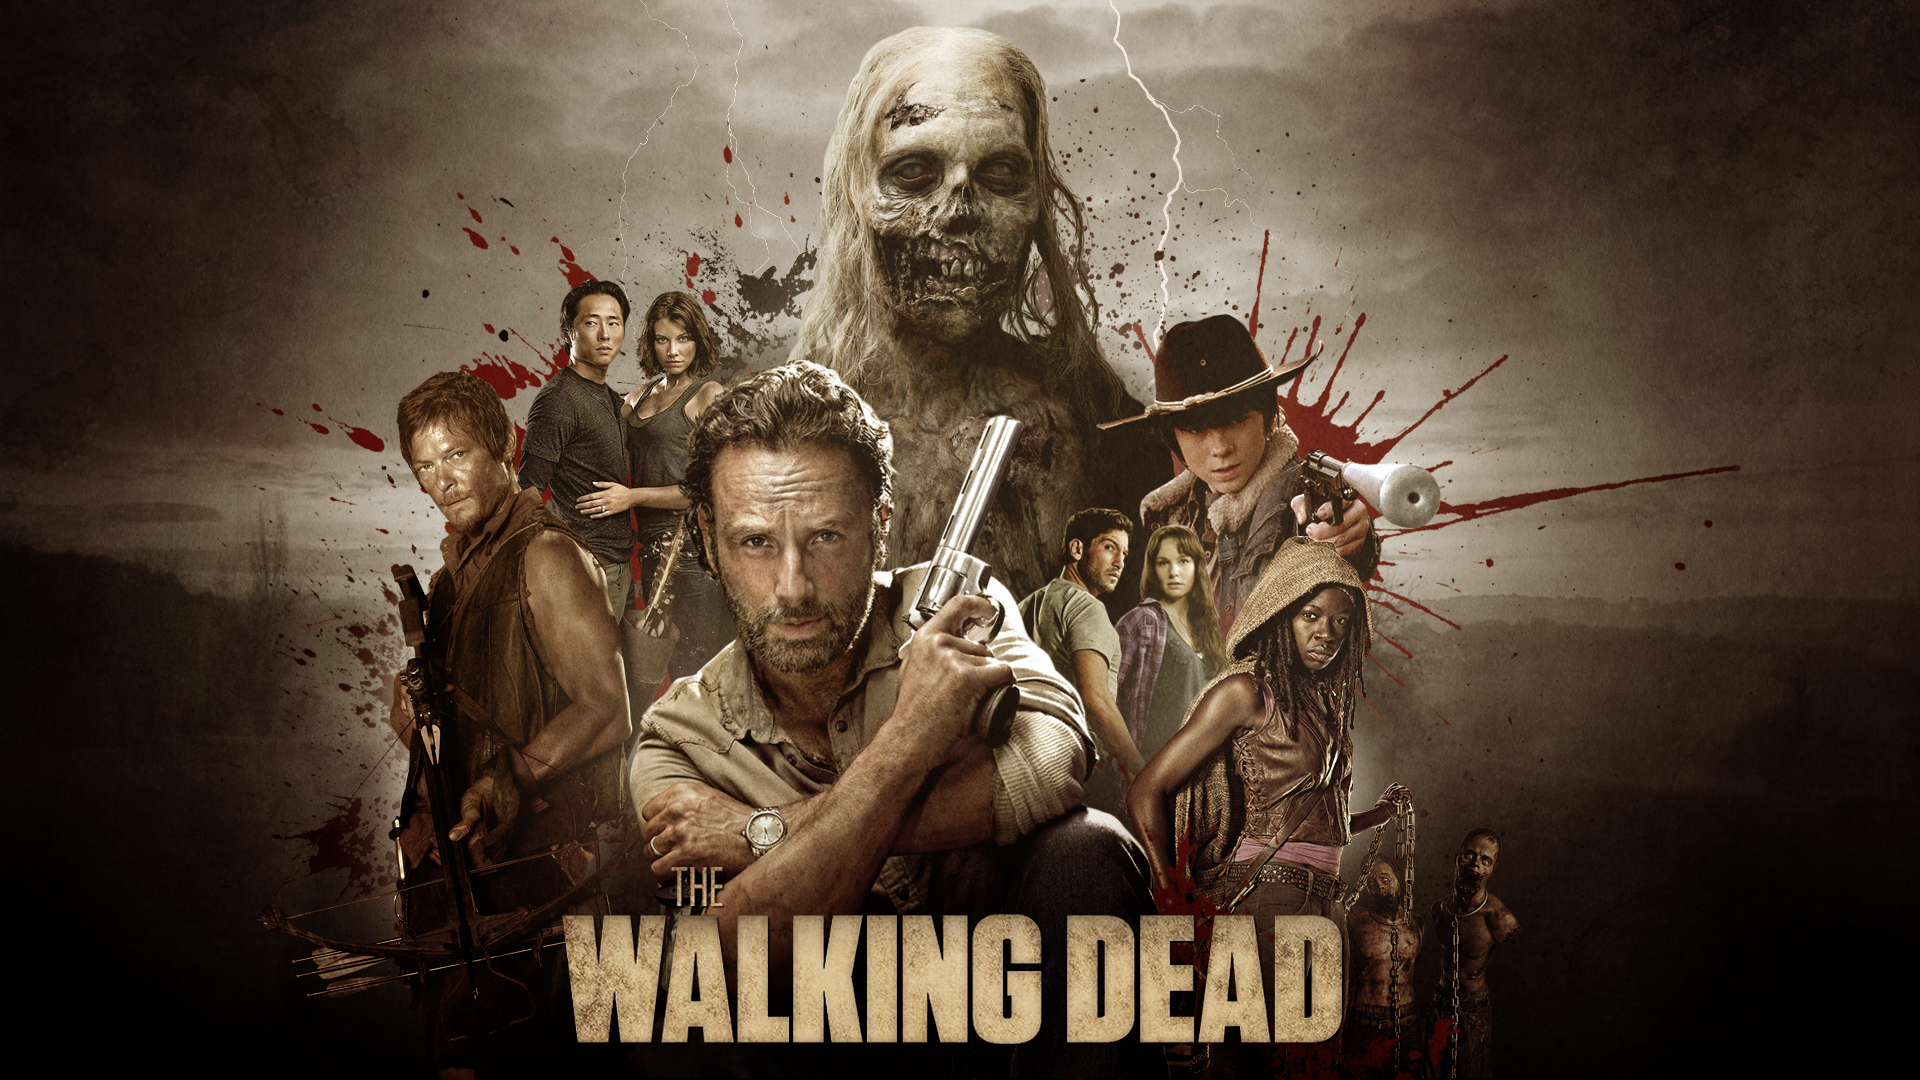 ... The Walking Dead collage - Wallpaper by RockLou